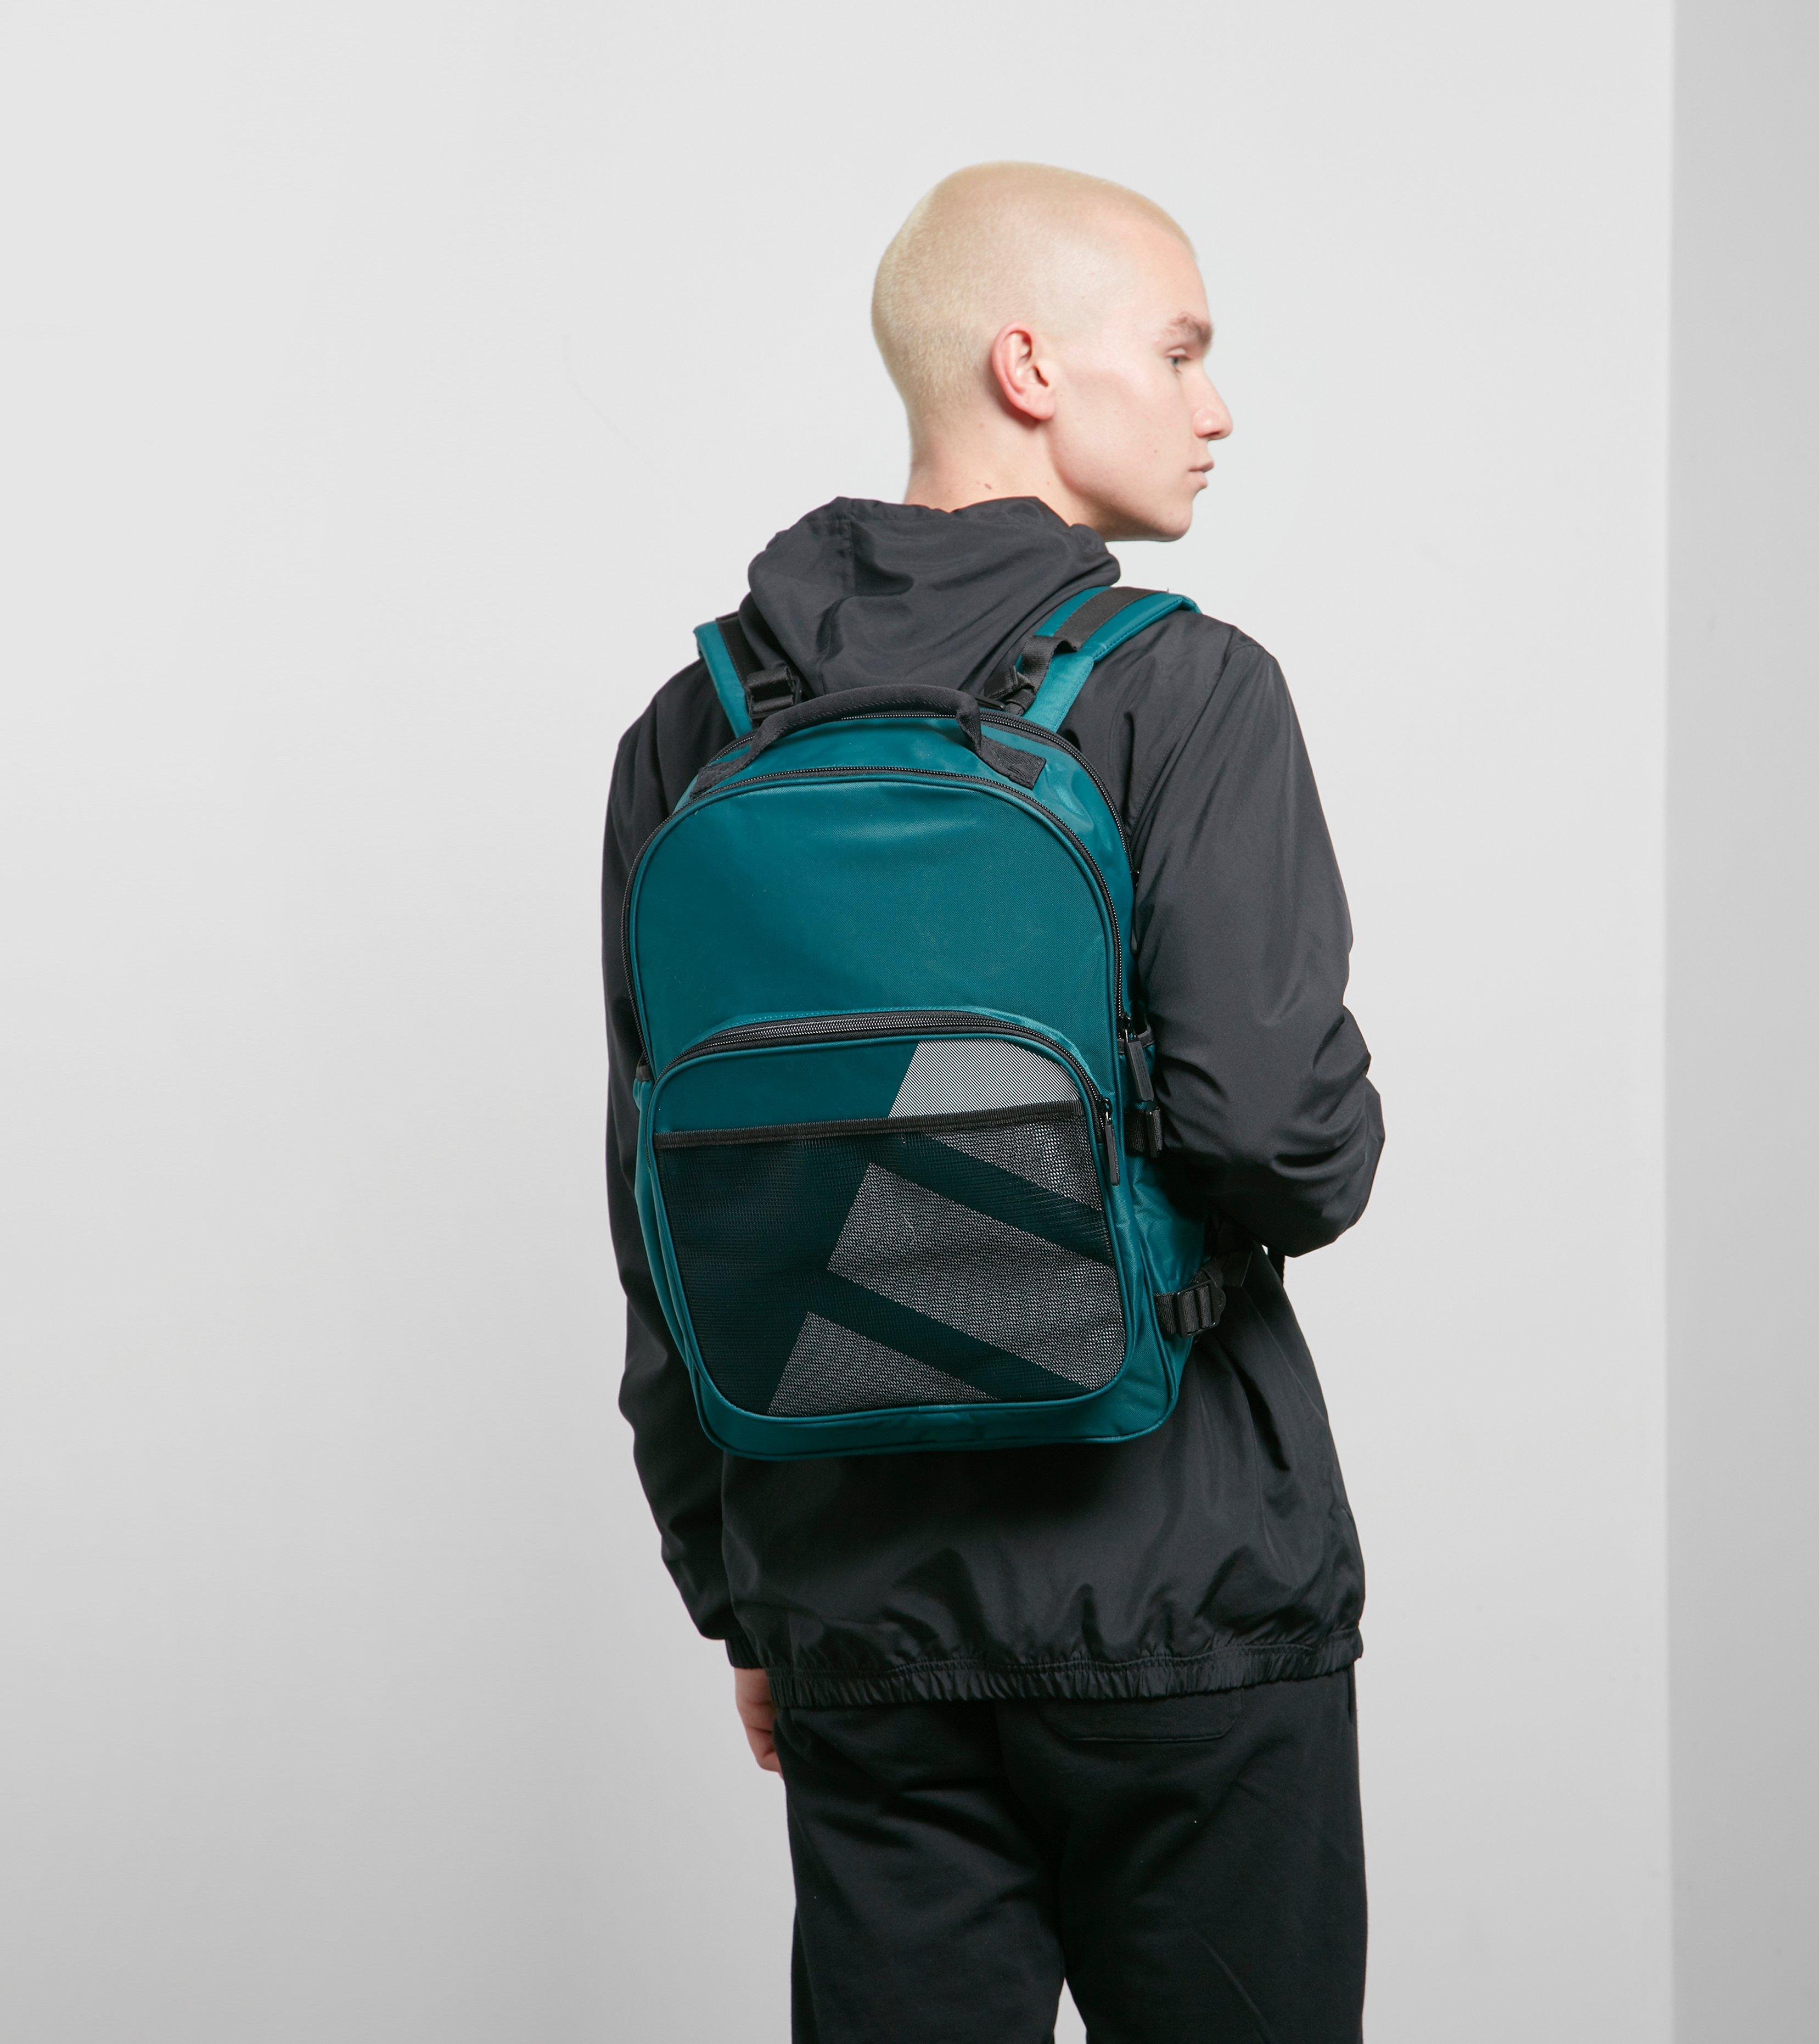 be8e5c5fac0a adidas Originals Adidas Equipment Classic Backpack Mystery Green in ...